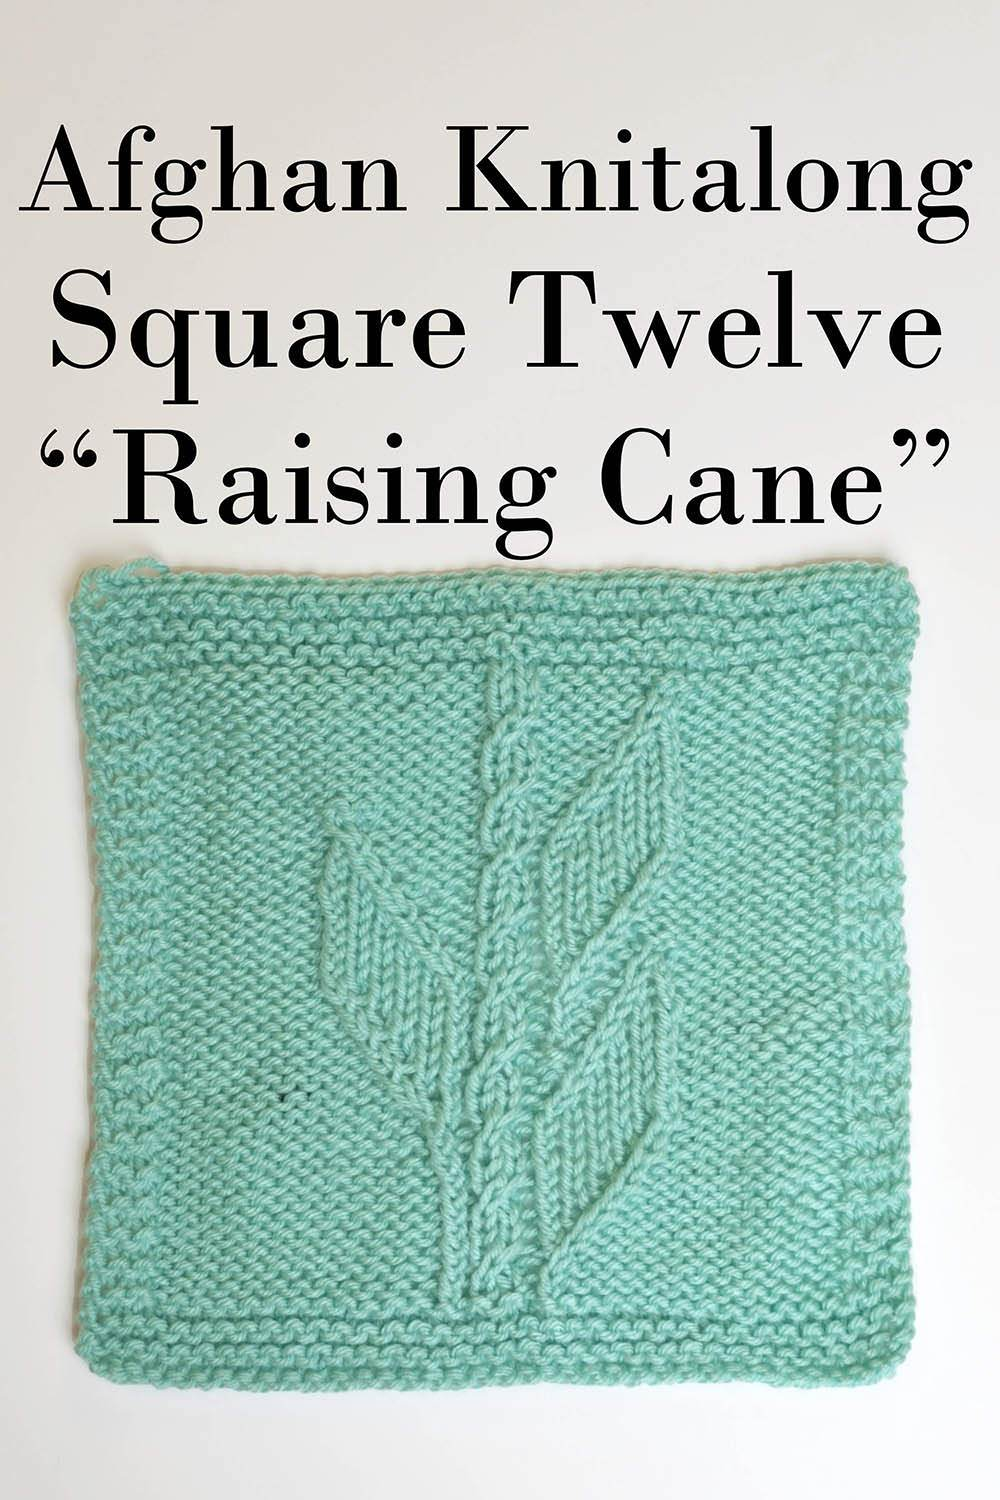 Afghan Knitalong Square 12 - Raising Cane Pattern Universal Yarn